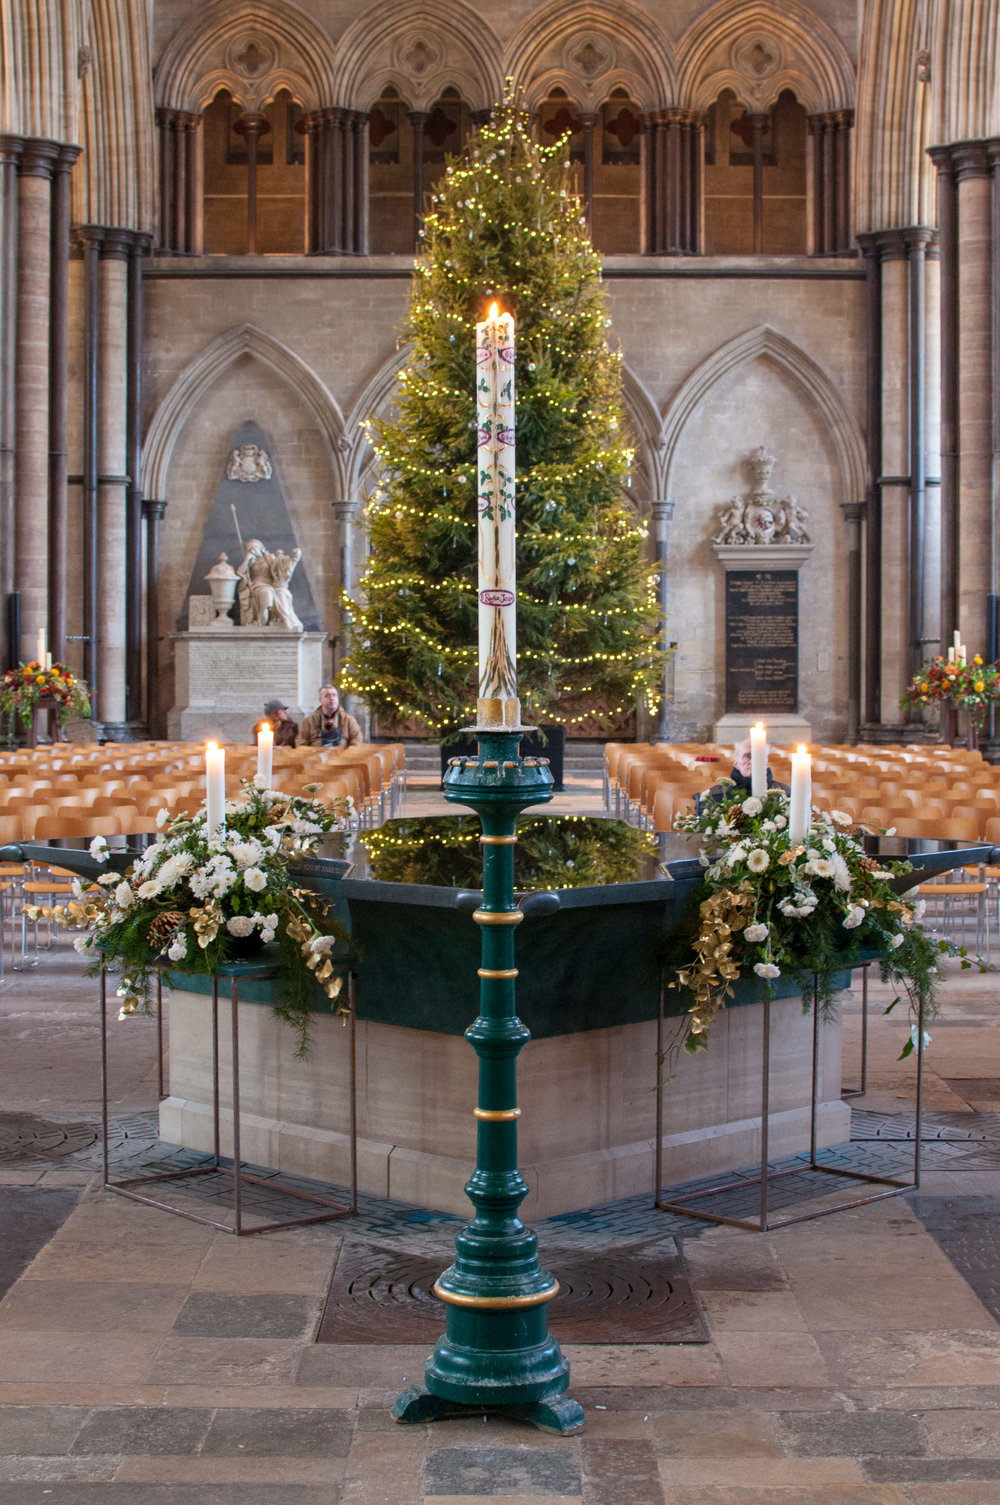 We love Christmas, here's one of our favourite Christmas shots from Salisbury Cathedral in our hometown